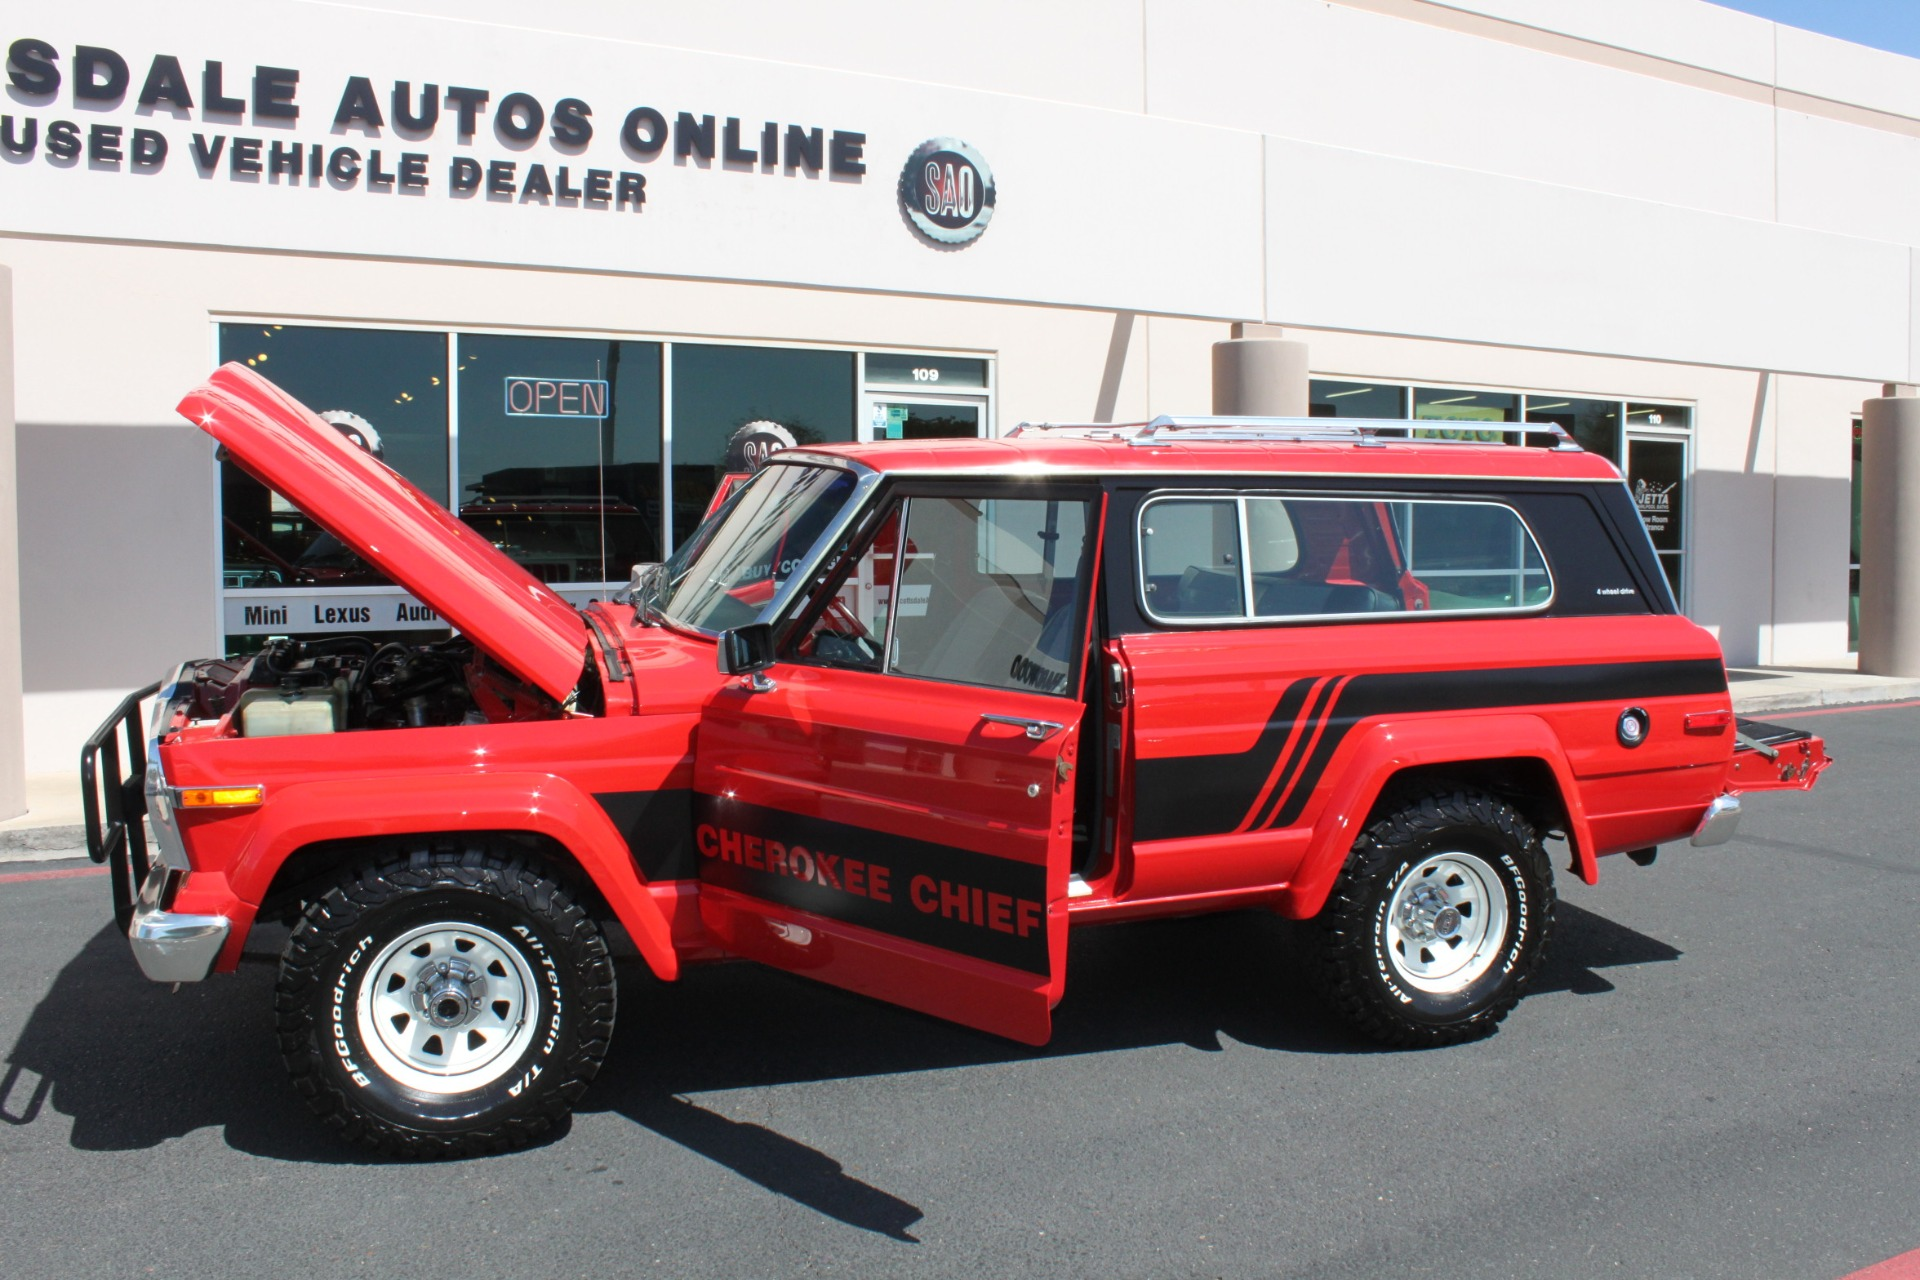 Used-1983-Jeep-Cherokee-Chief-4WD-Ford